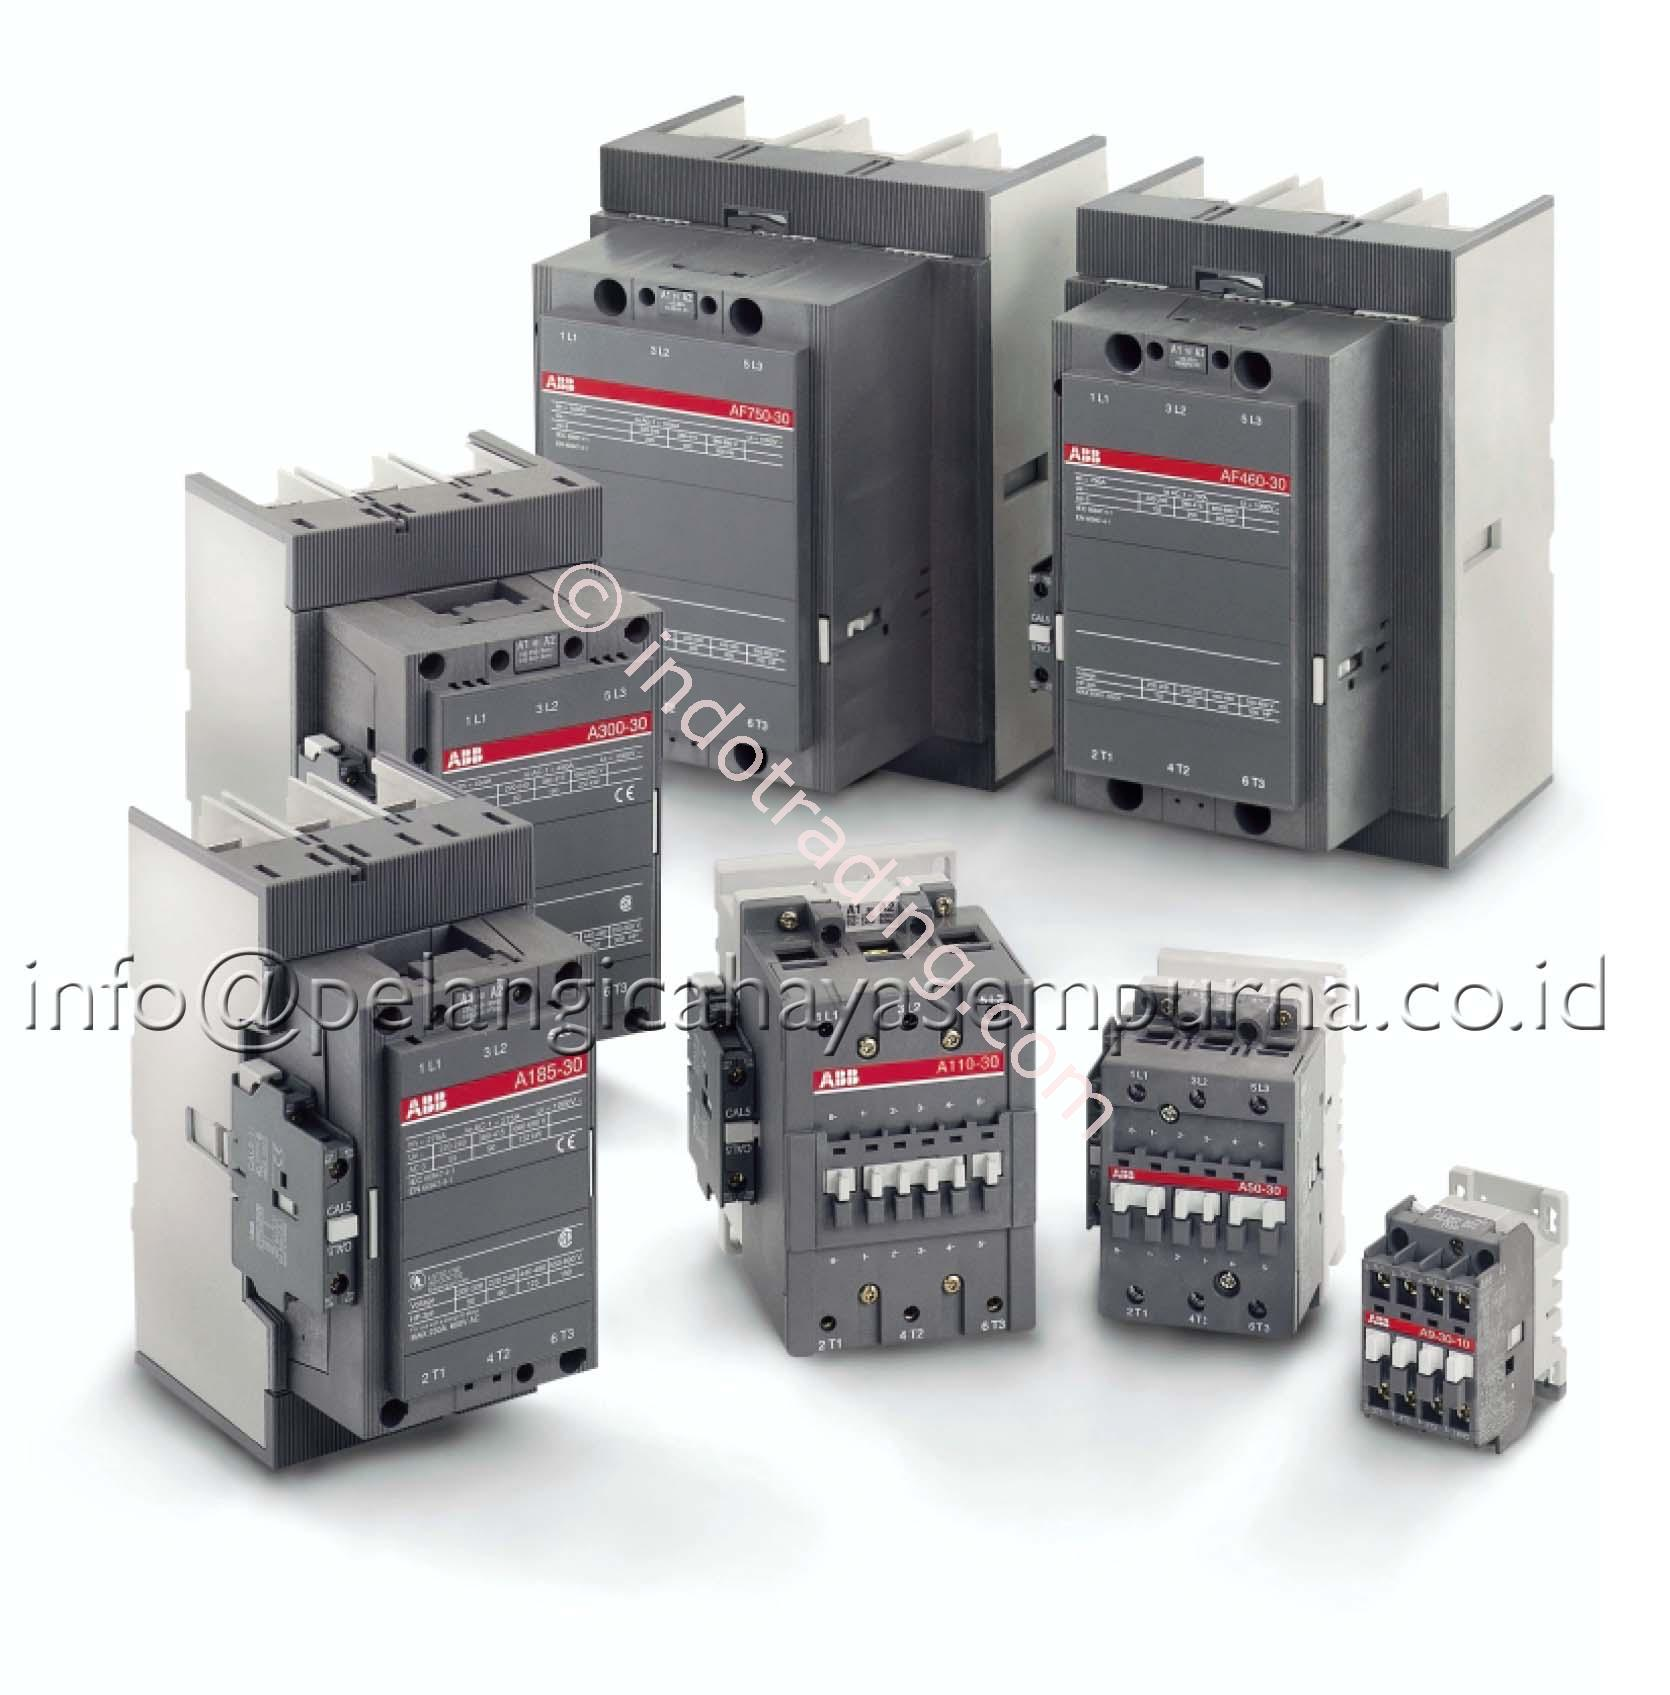 Jual abb contactor af motor protection circuit breaker ms for Abb motor protection relay catalogue